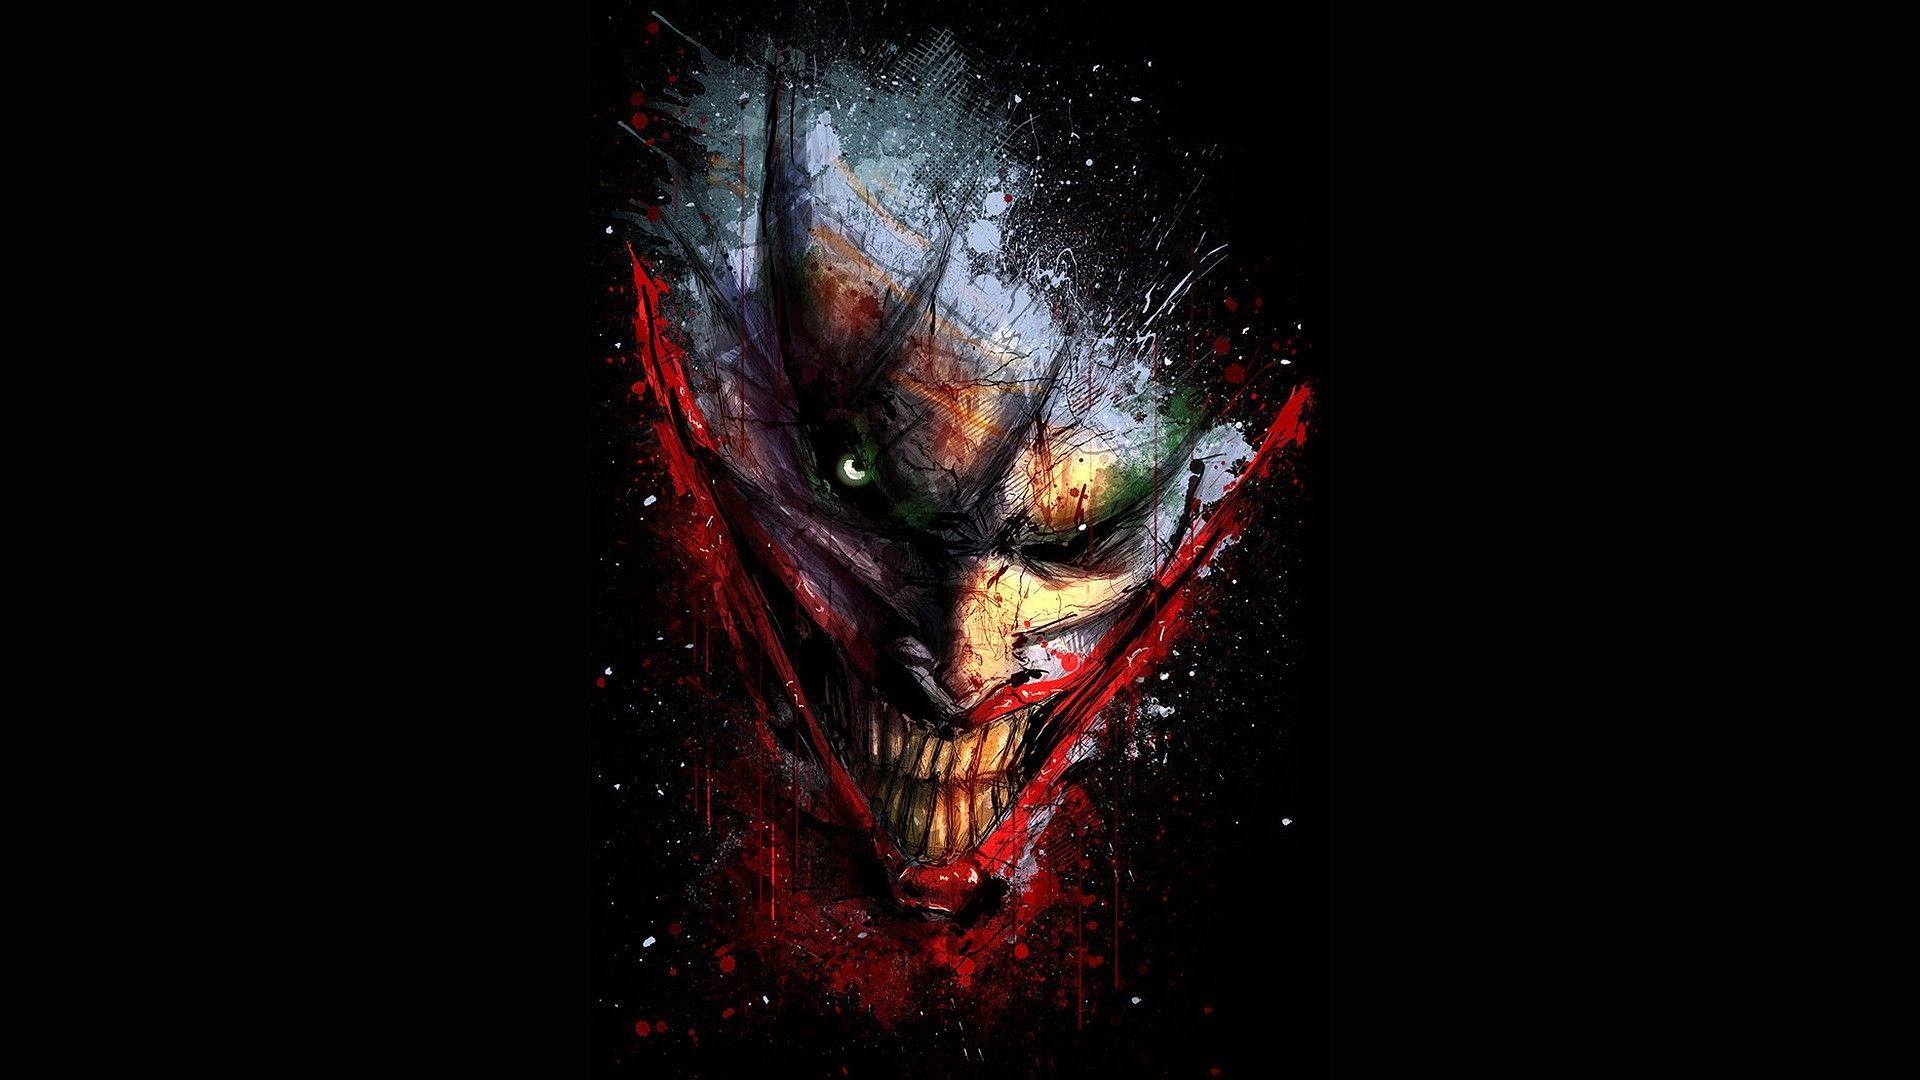 Joker   Batman Wallpaper 10086 1920x1080